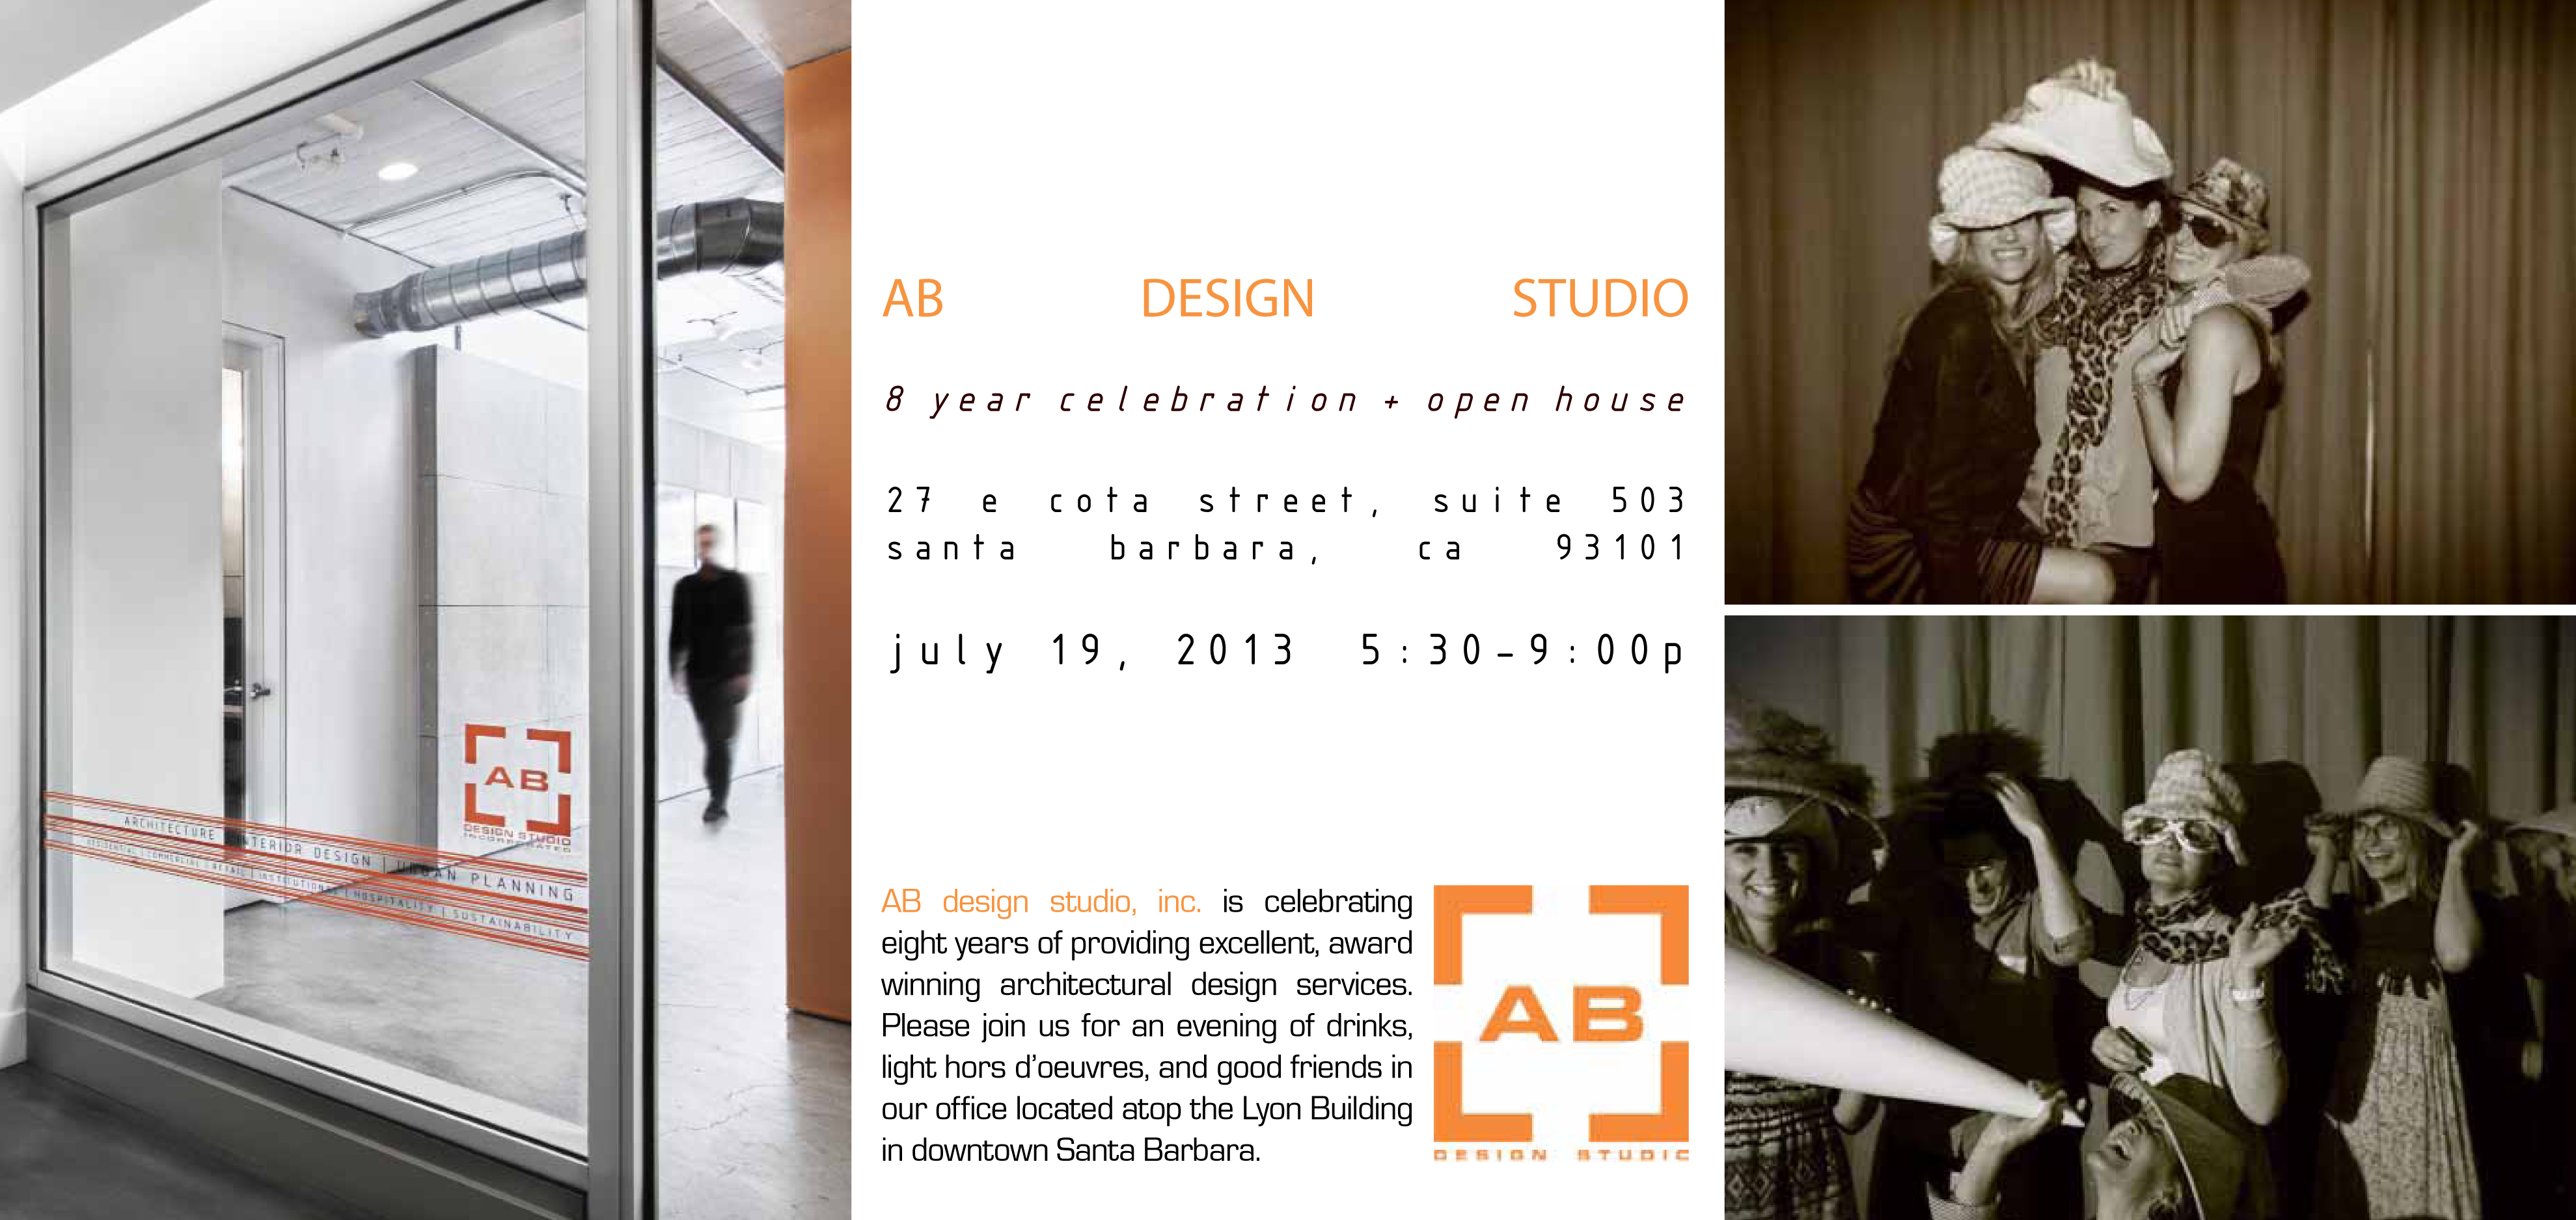 AB DESIGN STUDIO  8 year celebration + open house